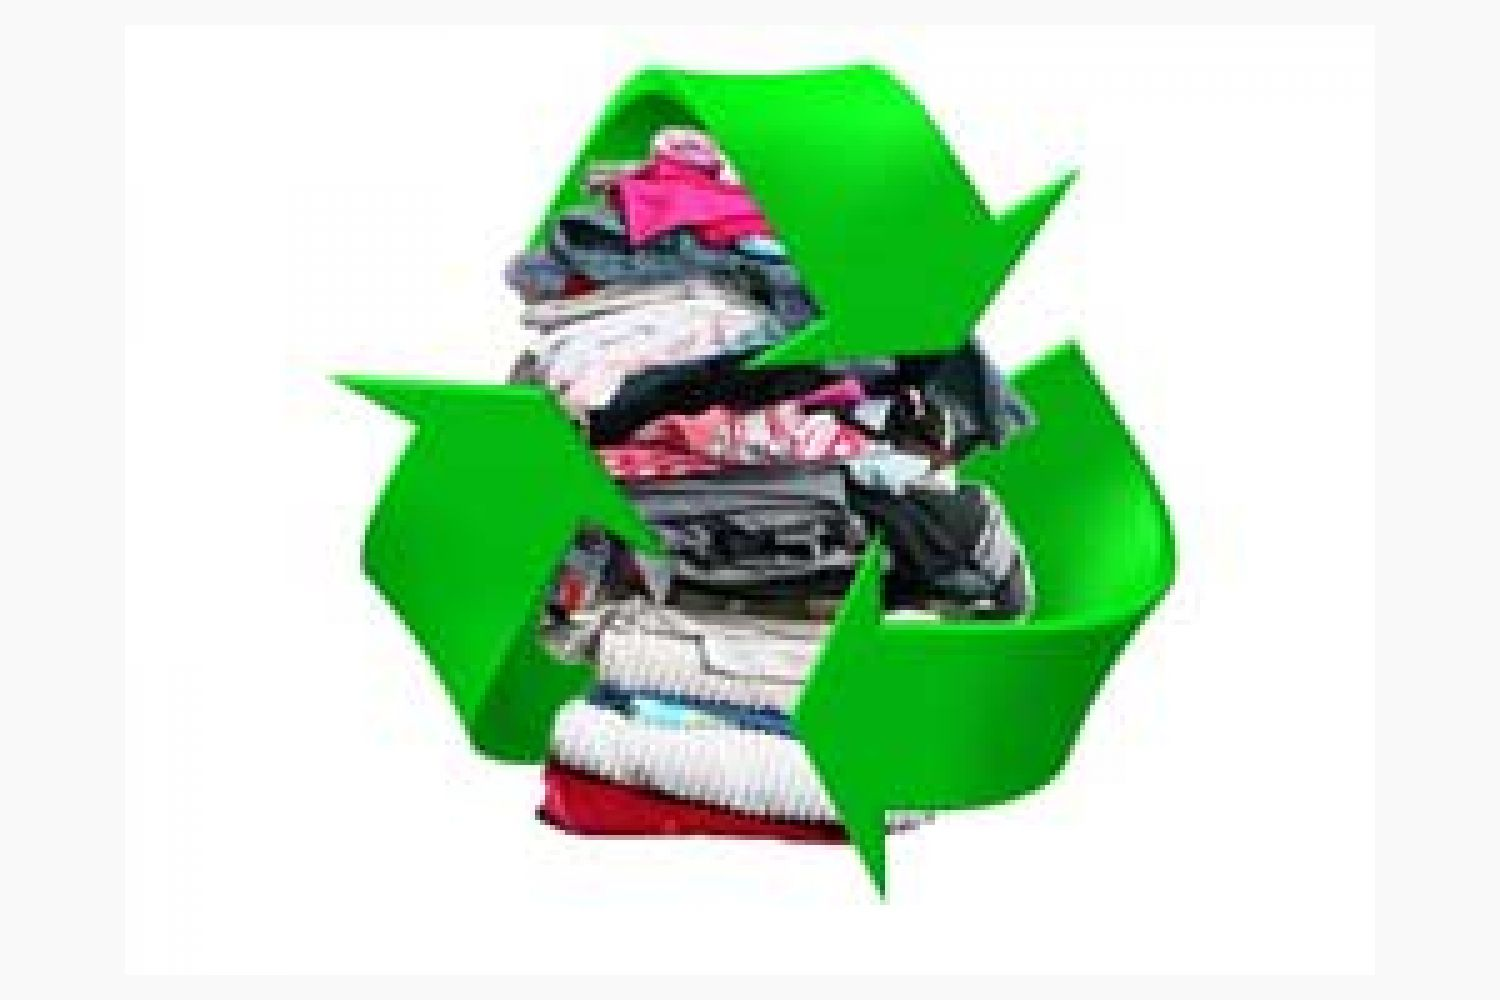 Kilmacud Crokes Camogie Textile Recycling & Crokes Exchange Friday 10th & Saturday 11th November